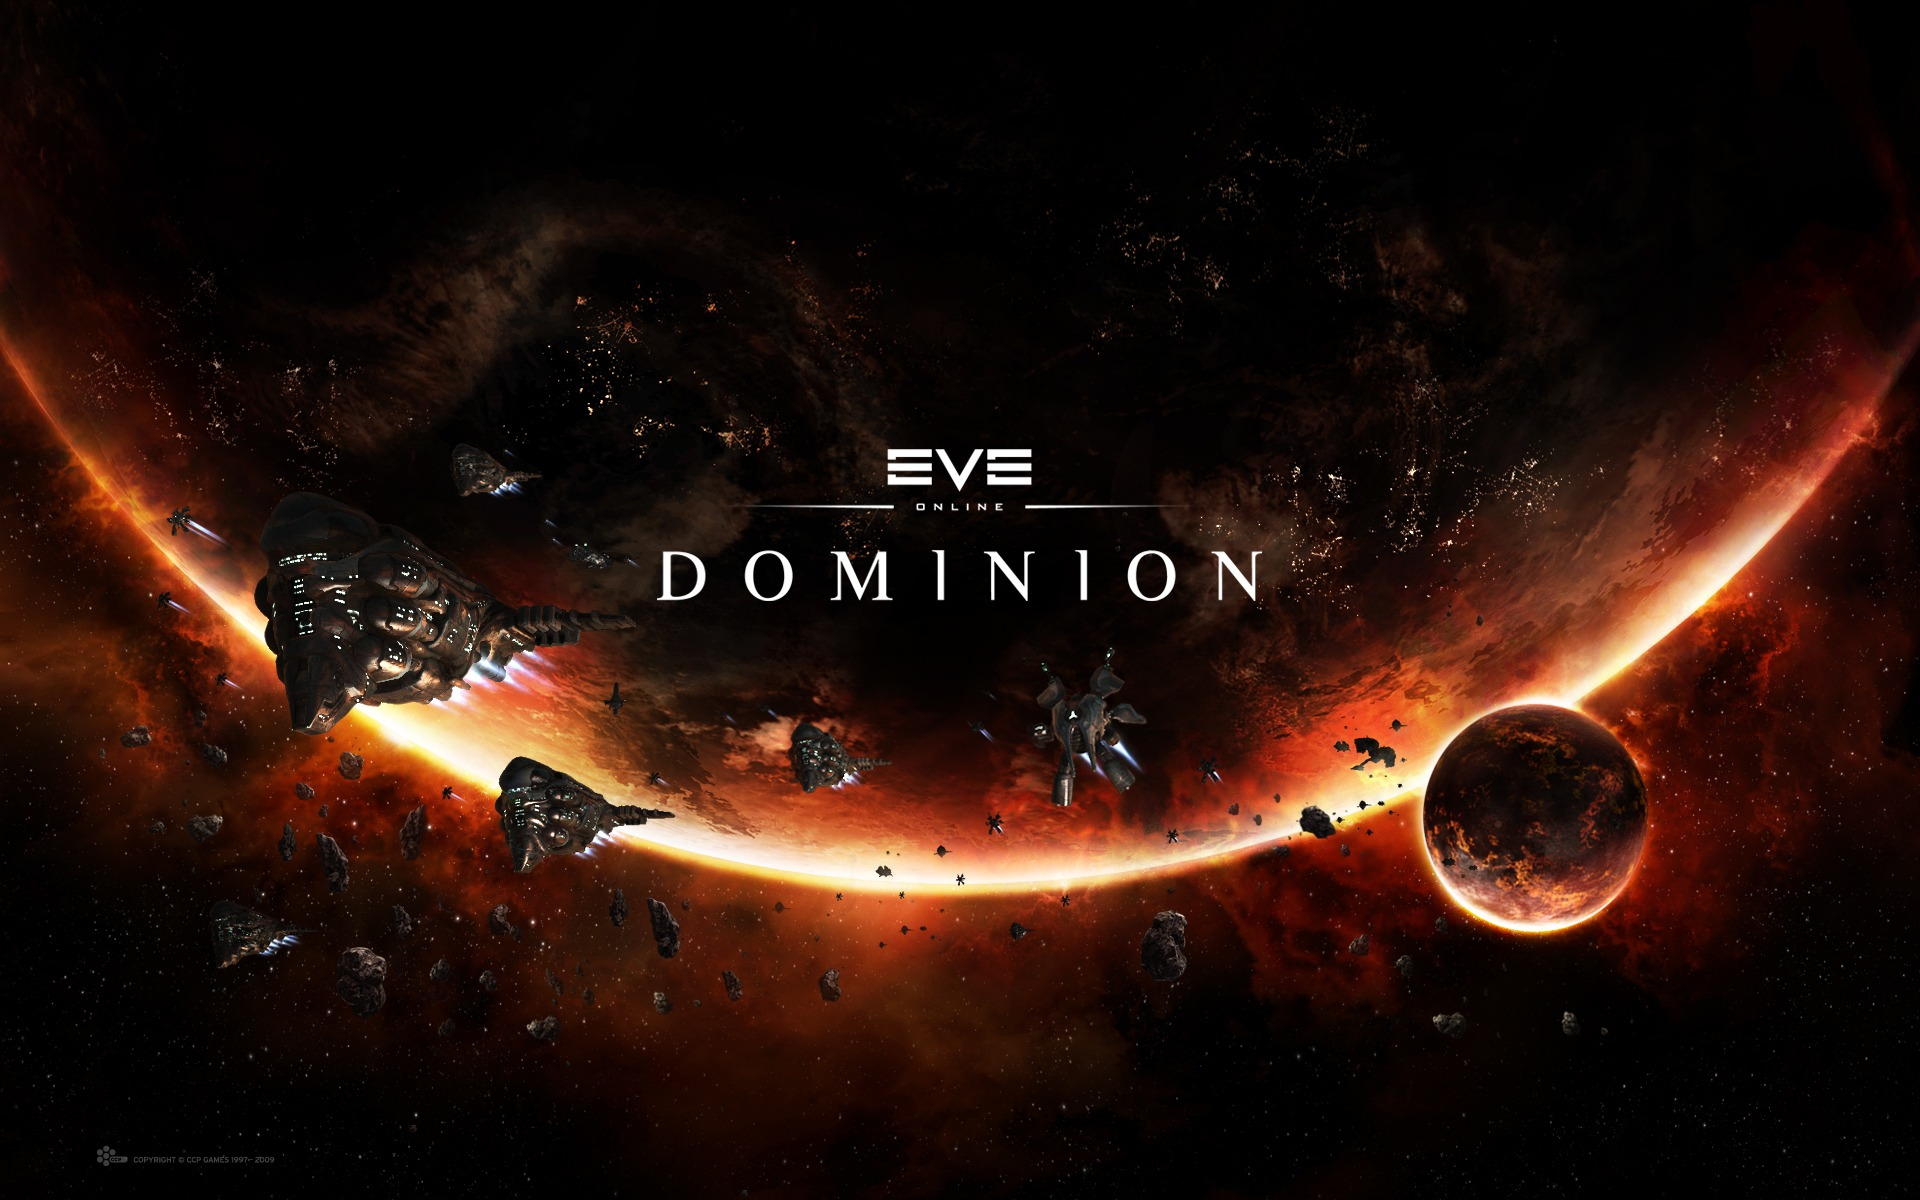 eve online dominion wallpaper online games games wallpaper 1920 1200 1920x1200